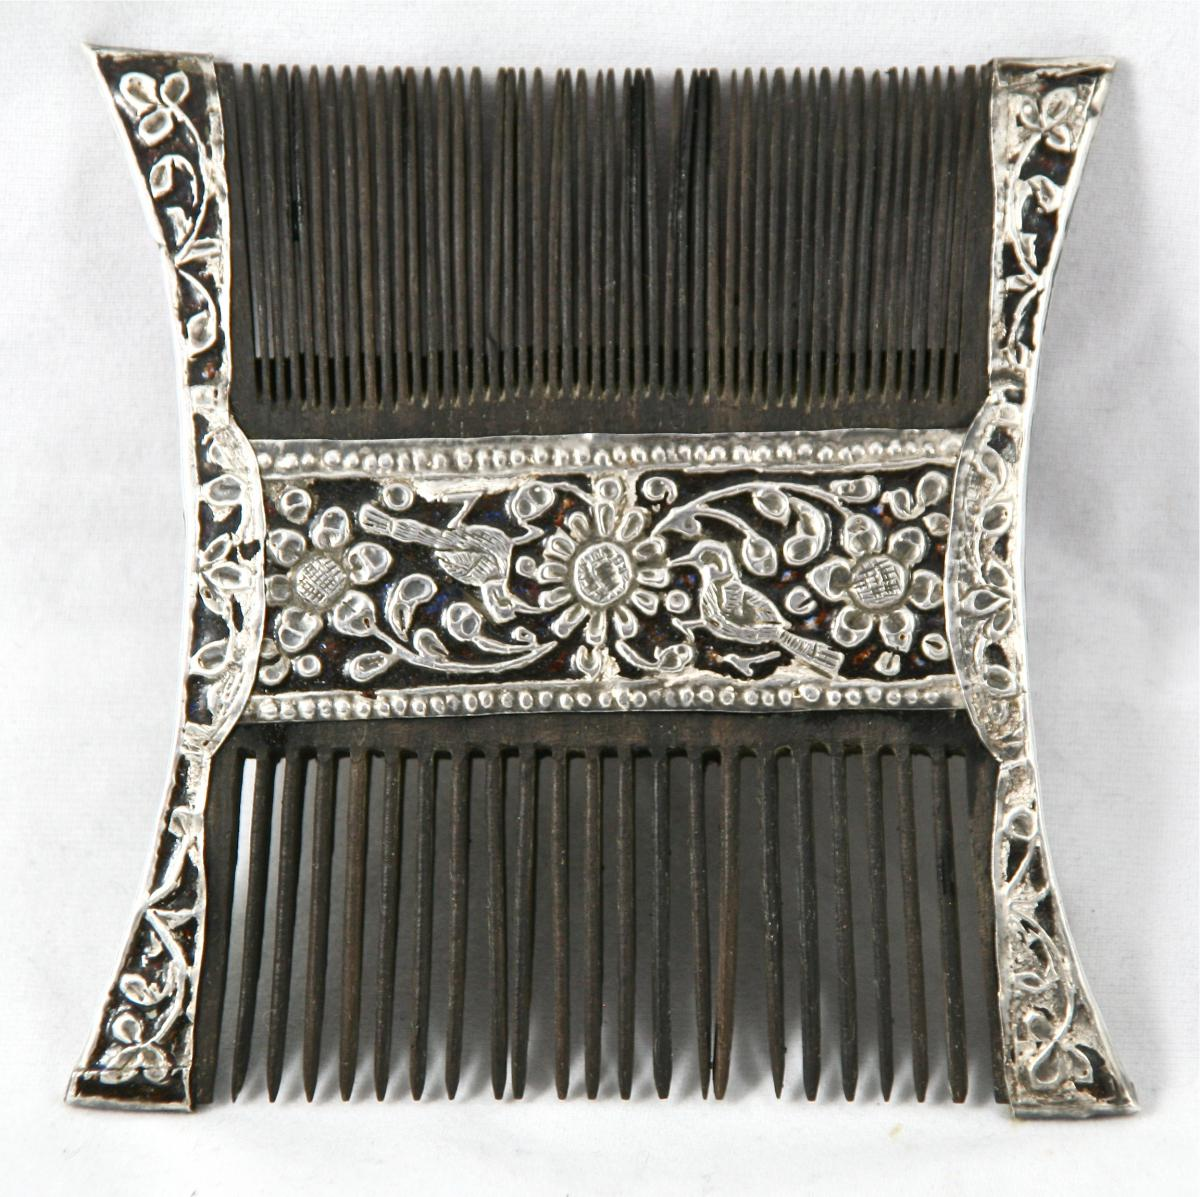 Double Nineteenth Indian Comb In Nickel Silver